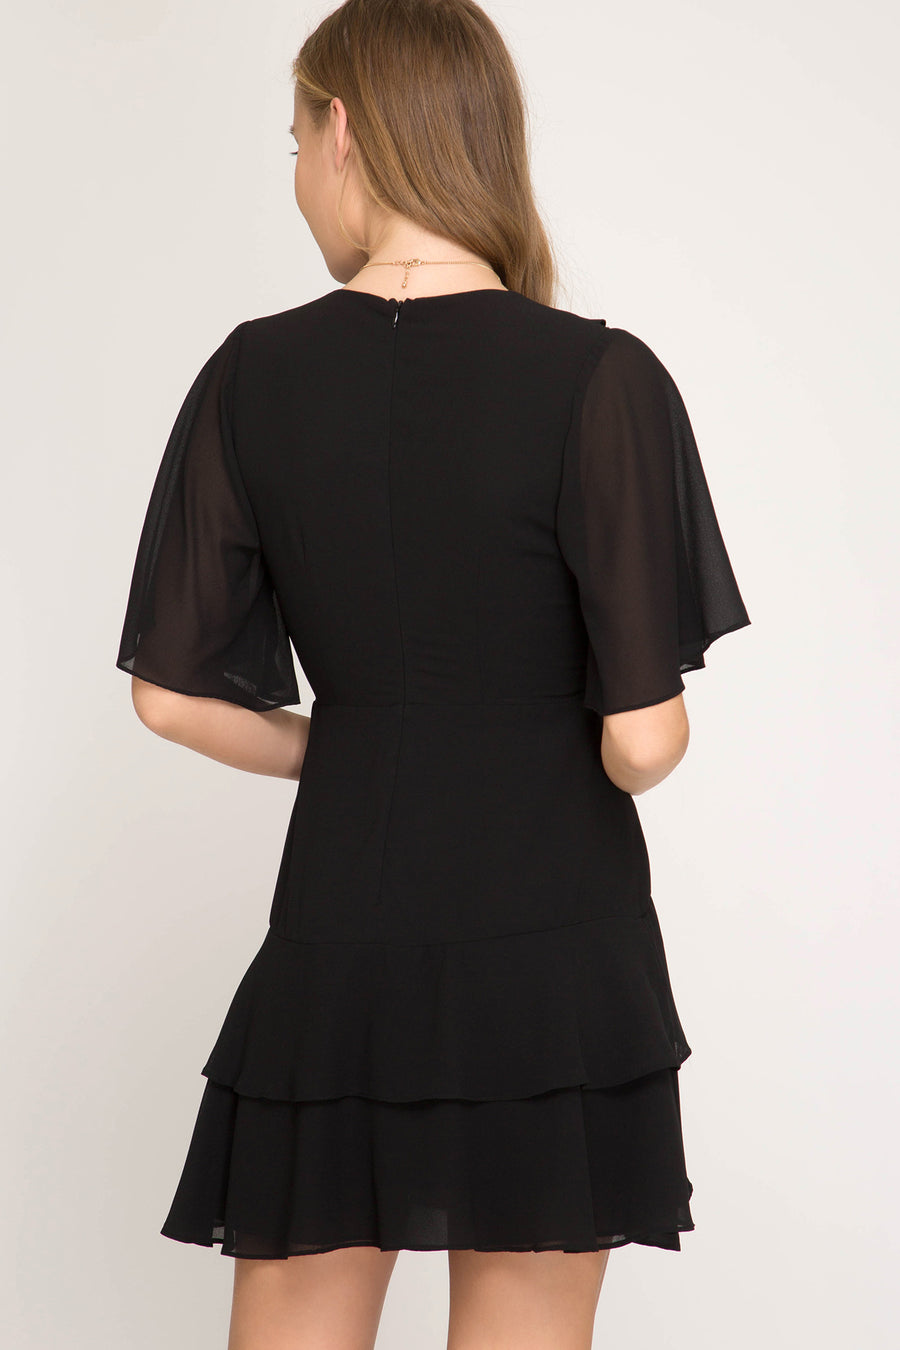 She + Sky Half sleeve woven dress with back waist tie and ruffle detail